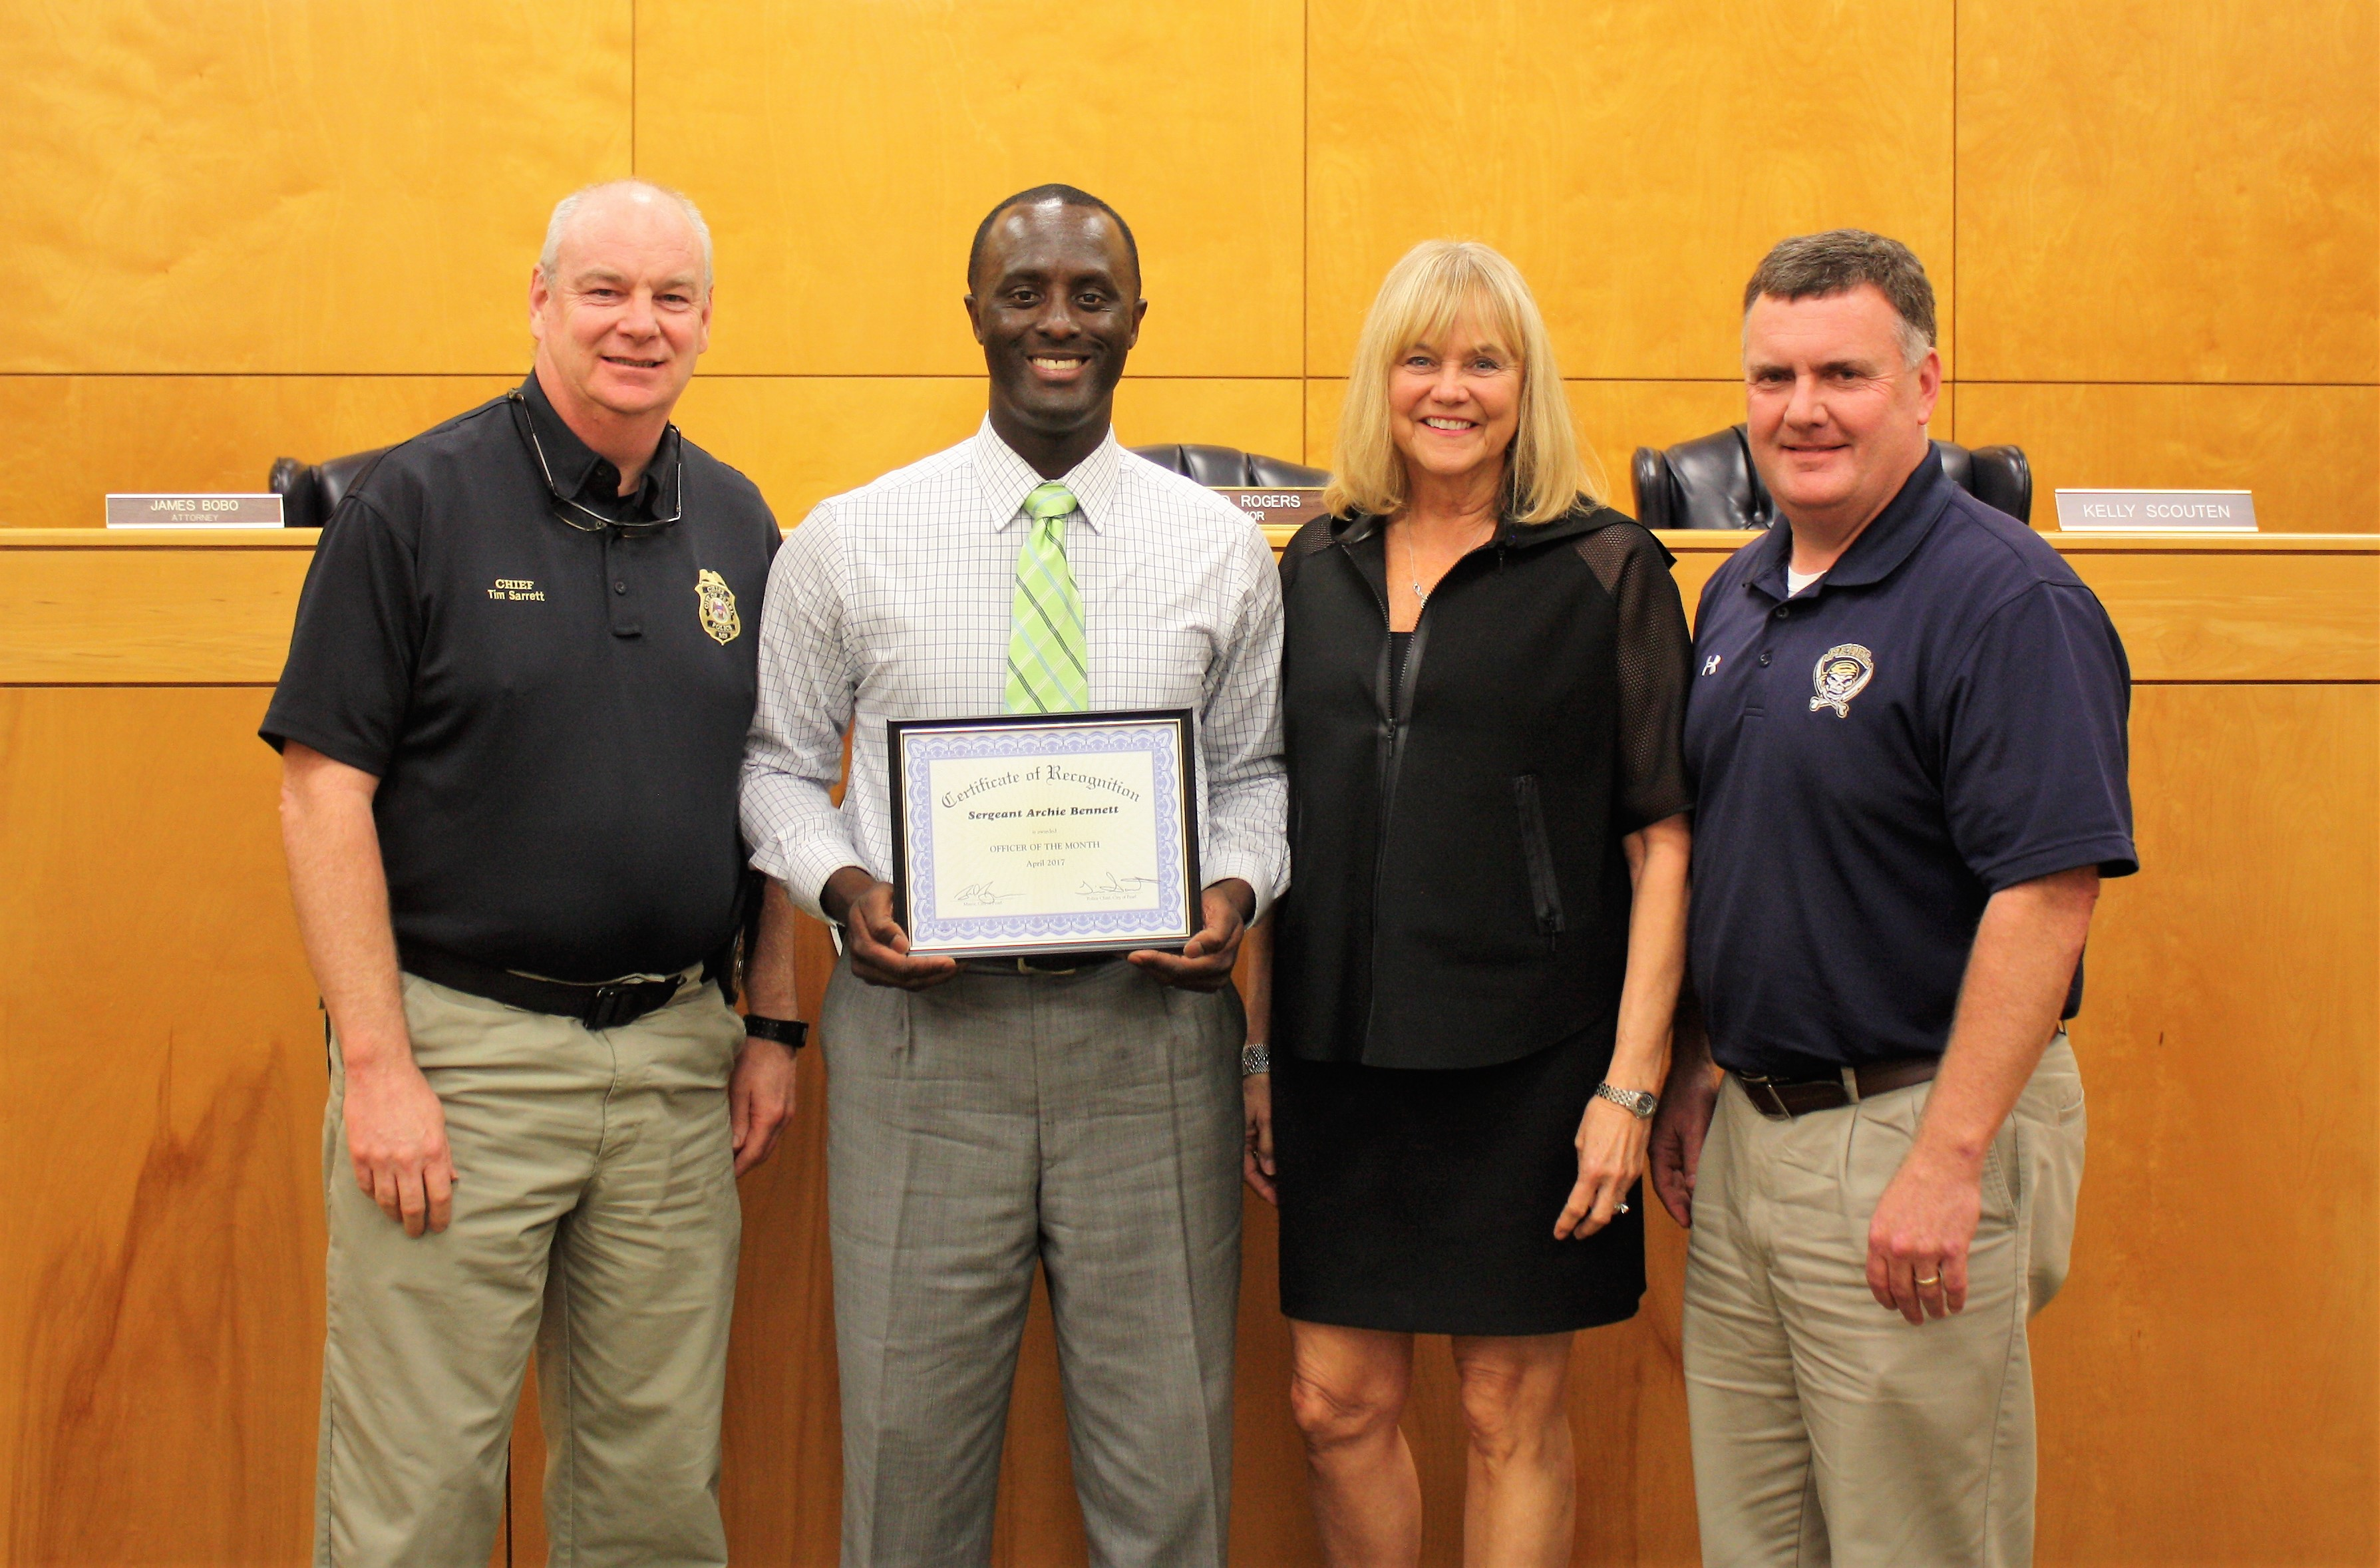 officer of the month pearl chamber of commerce officer of the month